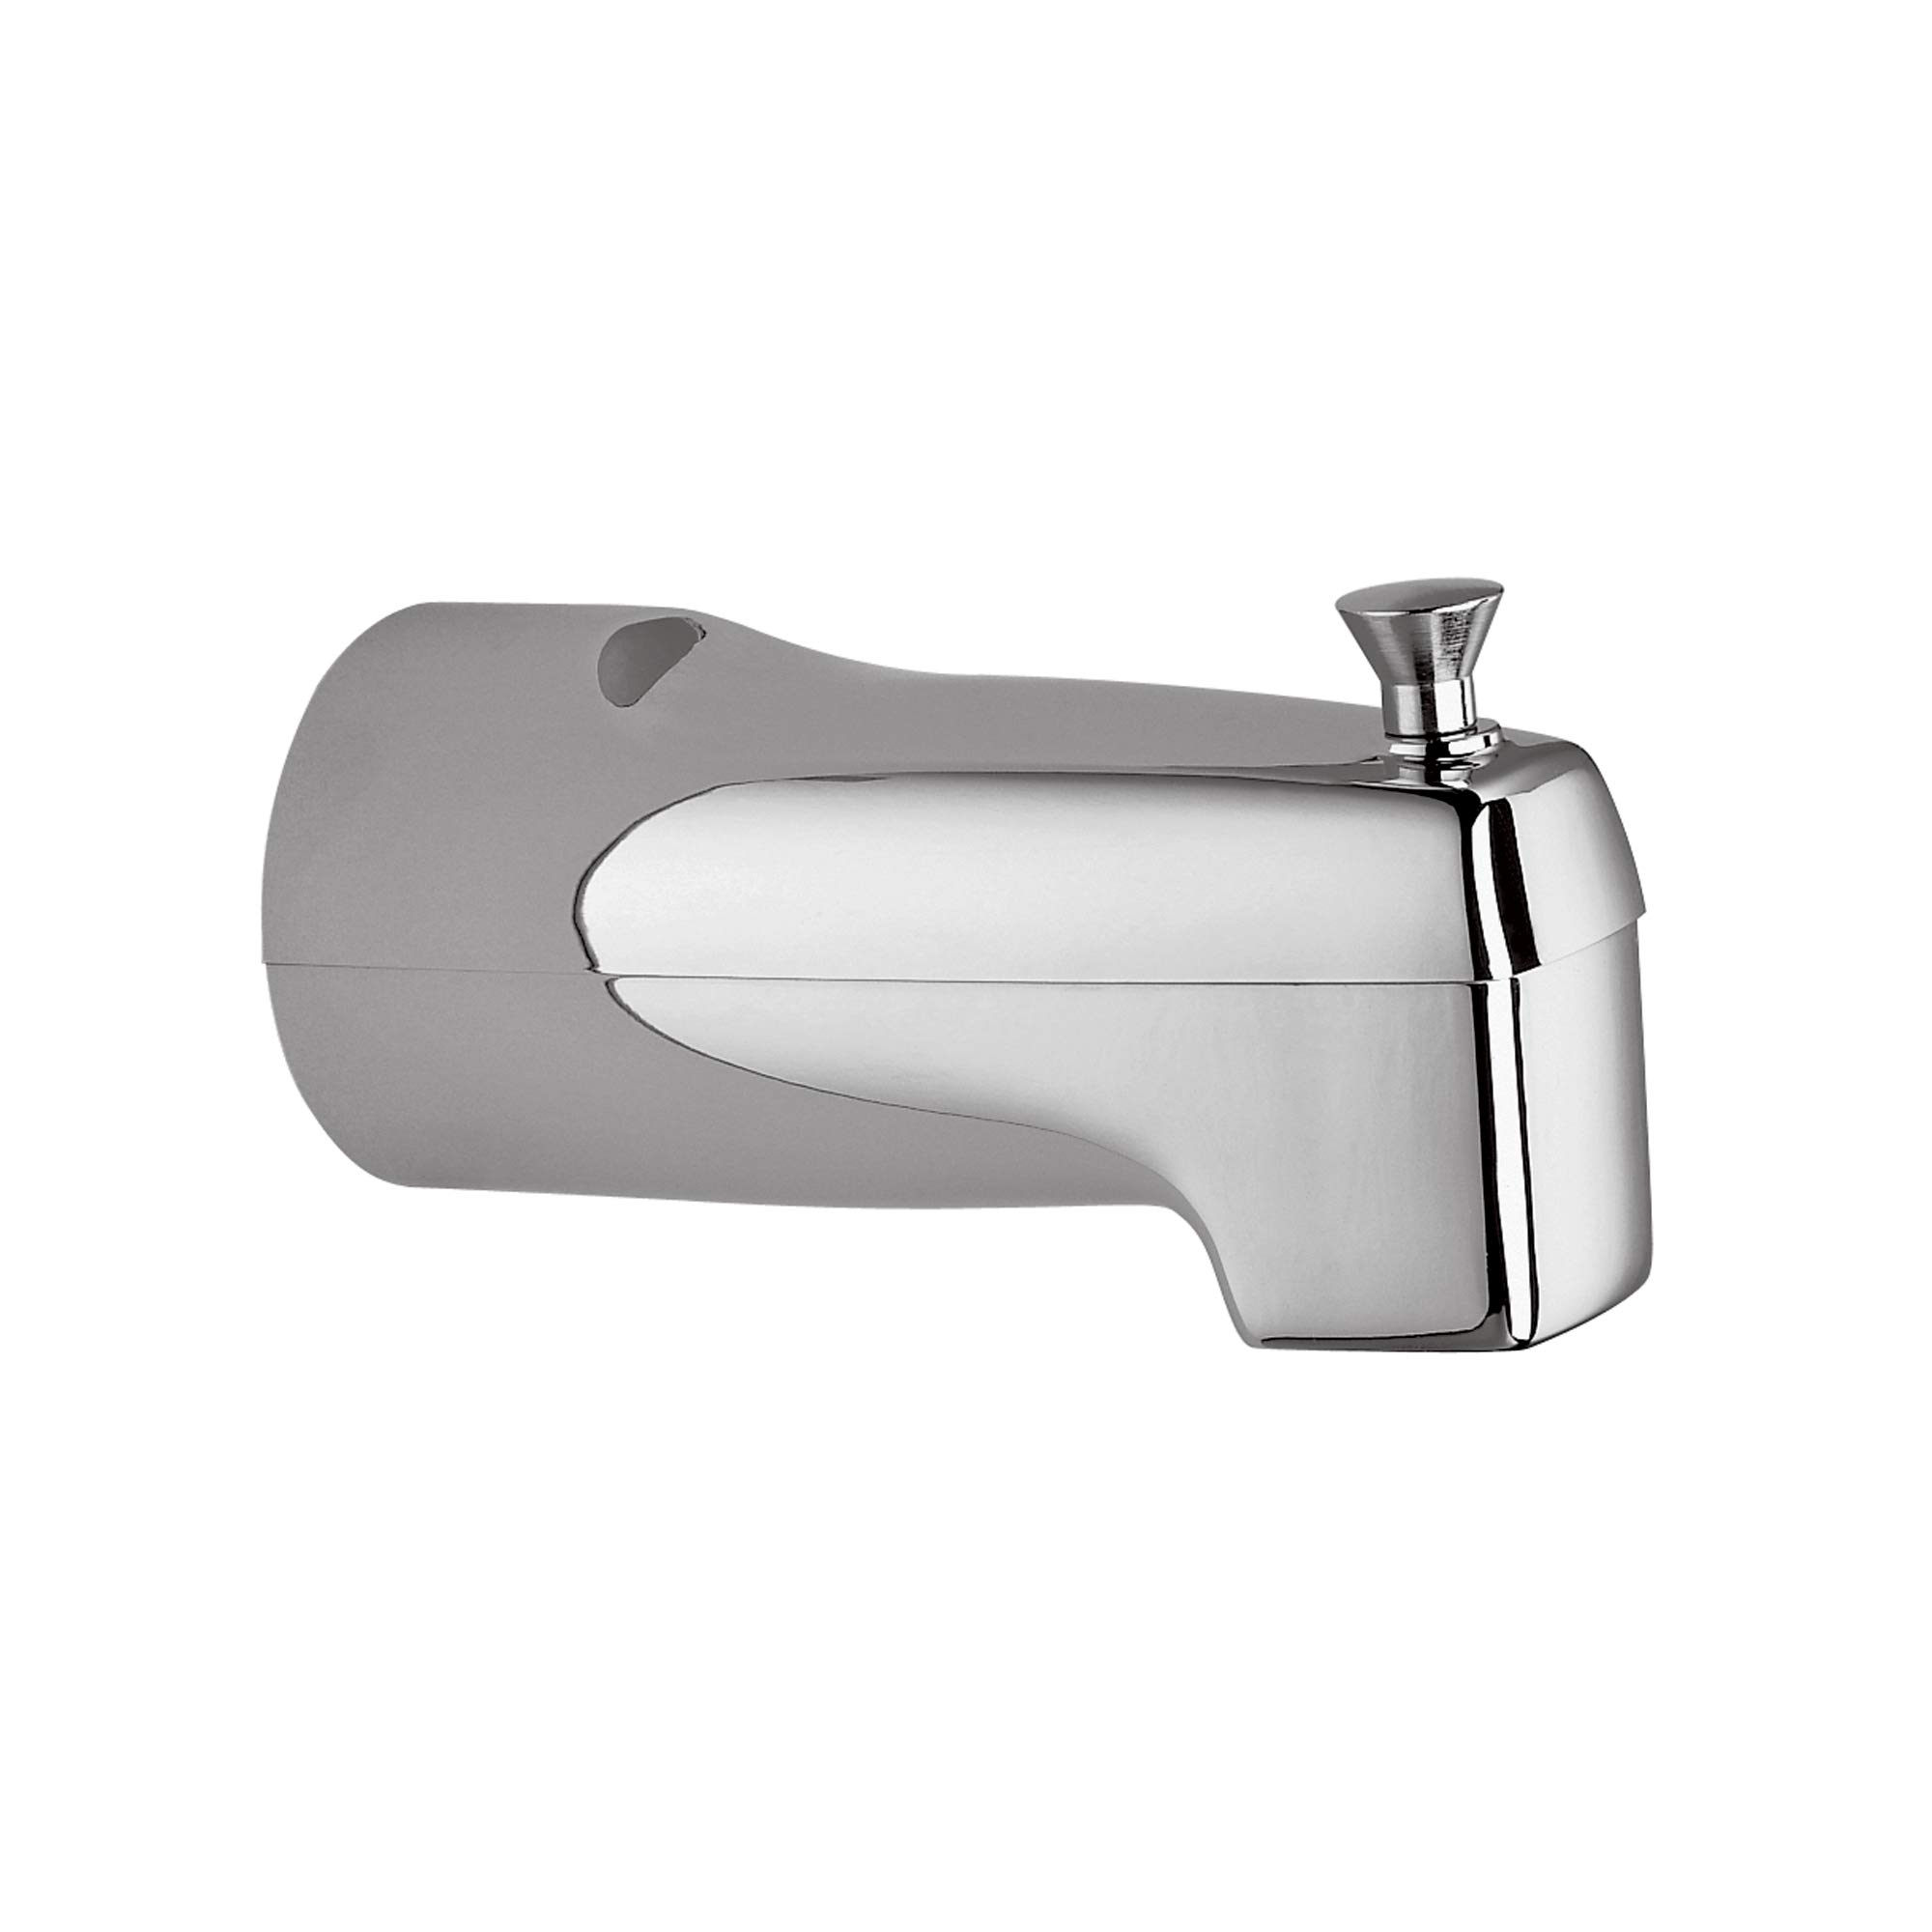 Moen 3931 Replacement 5.5-Inch Tub Diverter Spout with 1/2-Inch Slip Fit Connection, Chrome